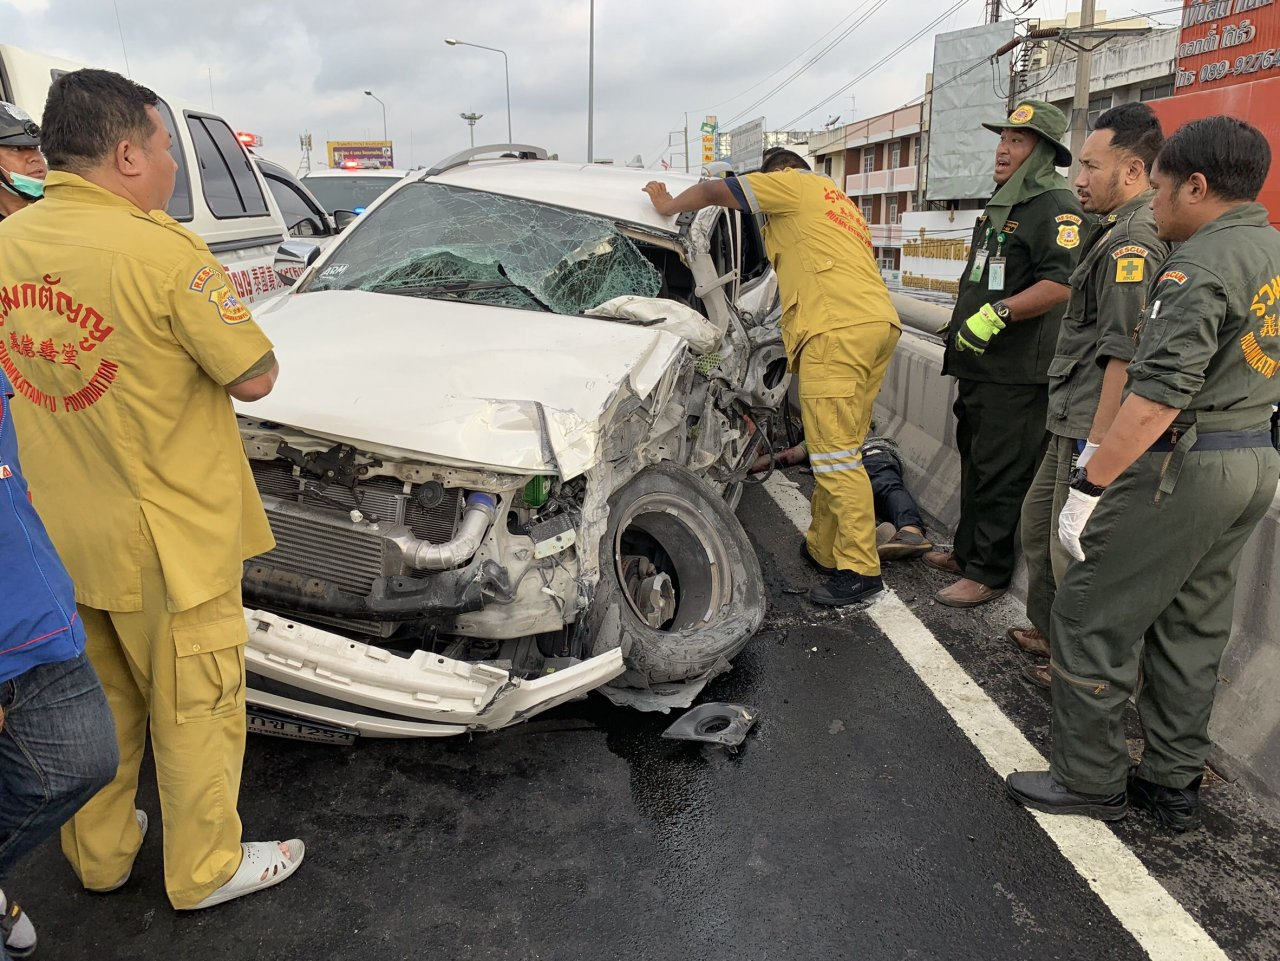 Road Carnage results for Songkran